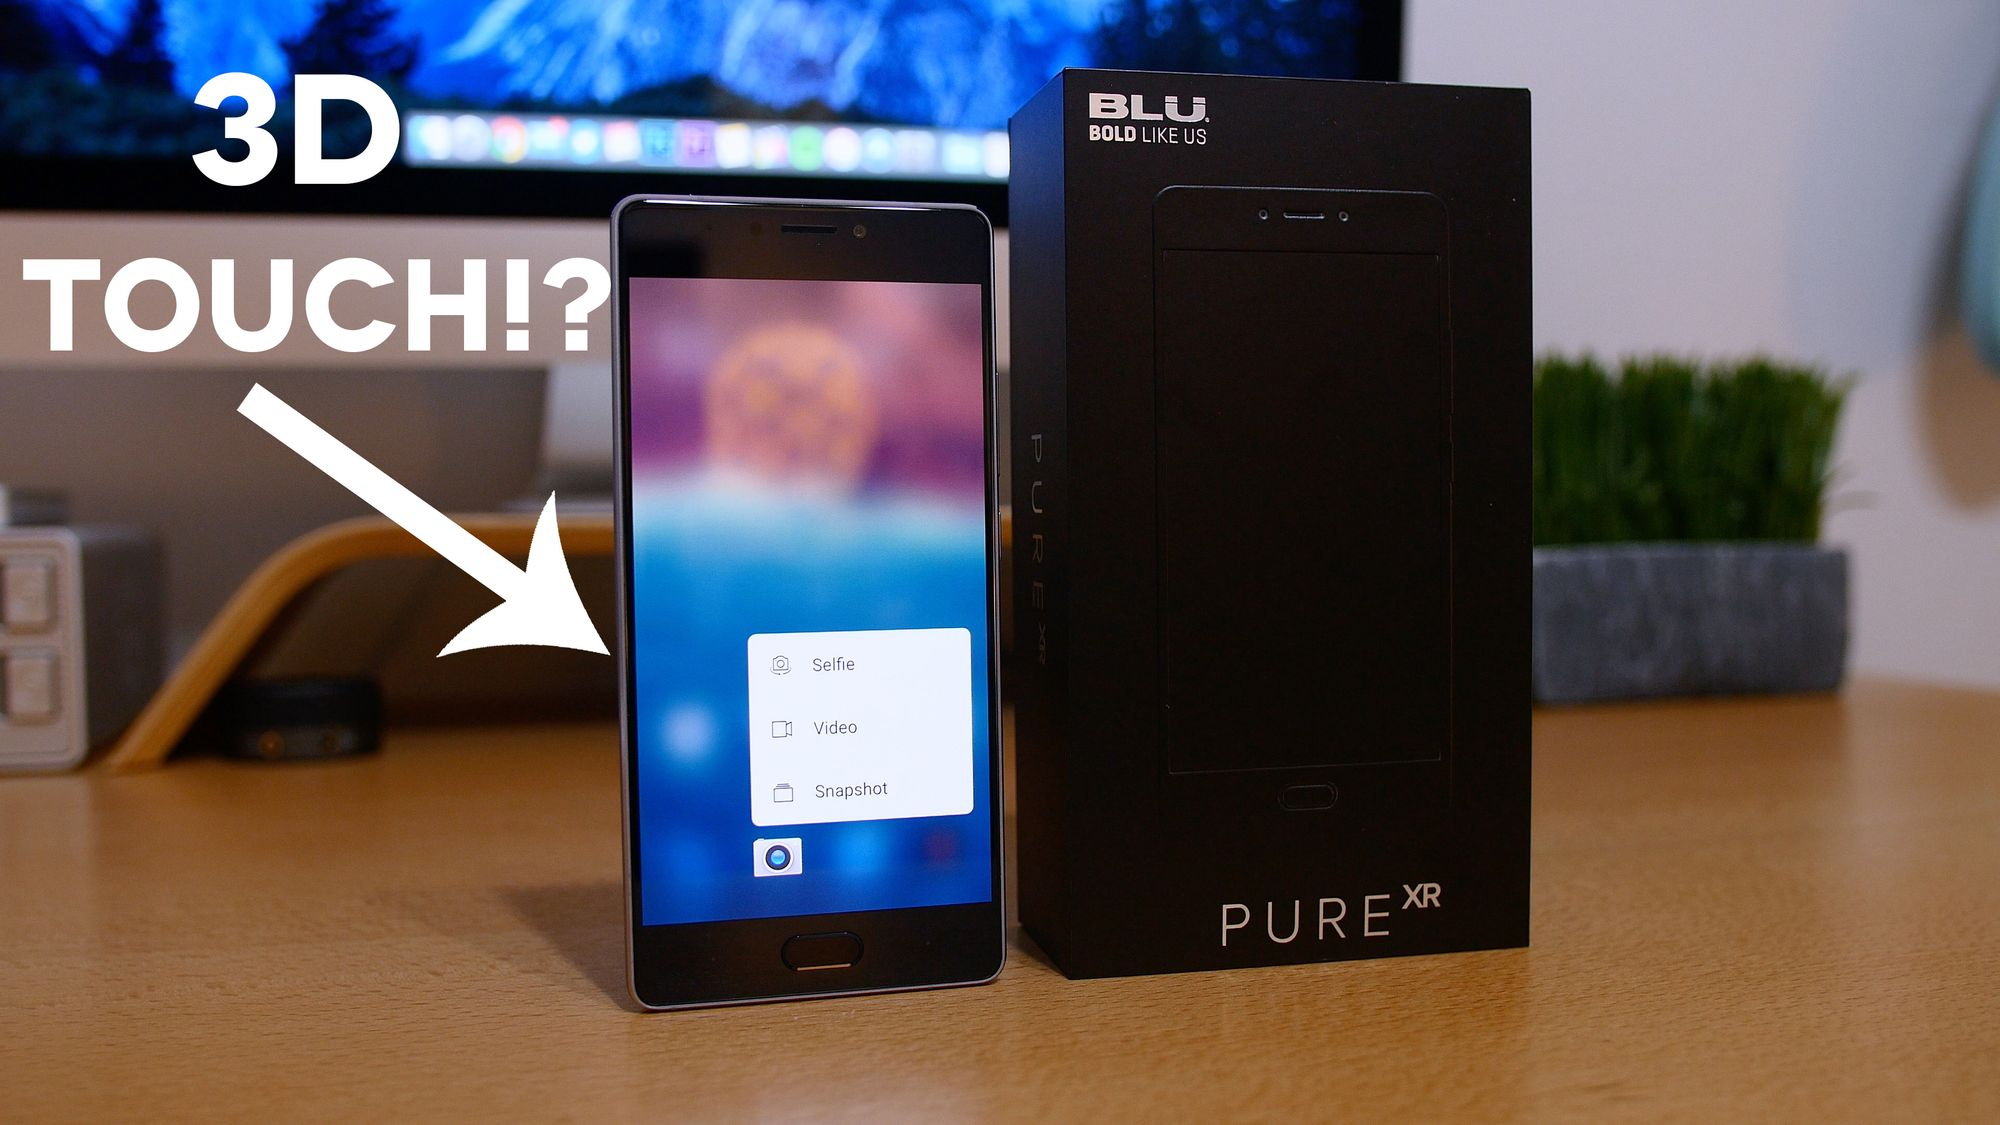 BLU Pure XR Impressions: 3D Touch & 4gb RAM for Only $299